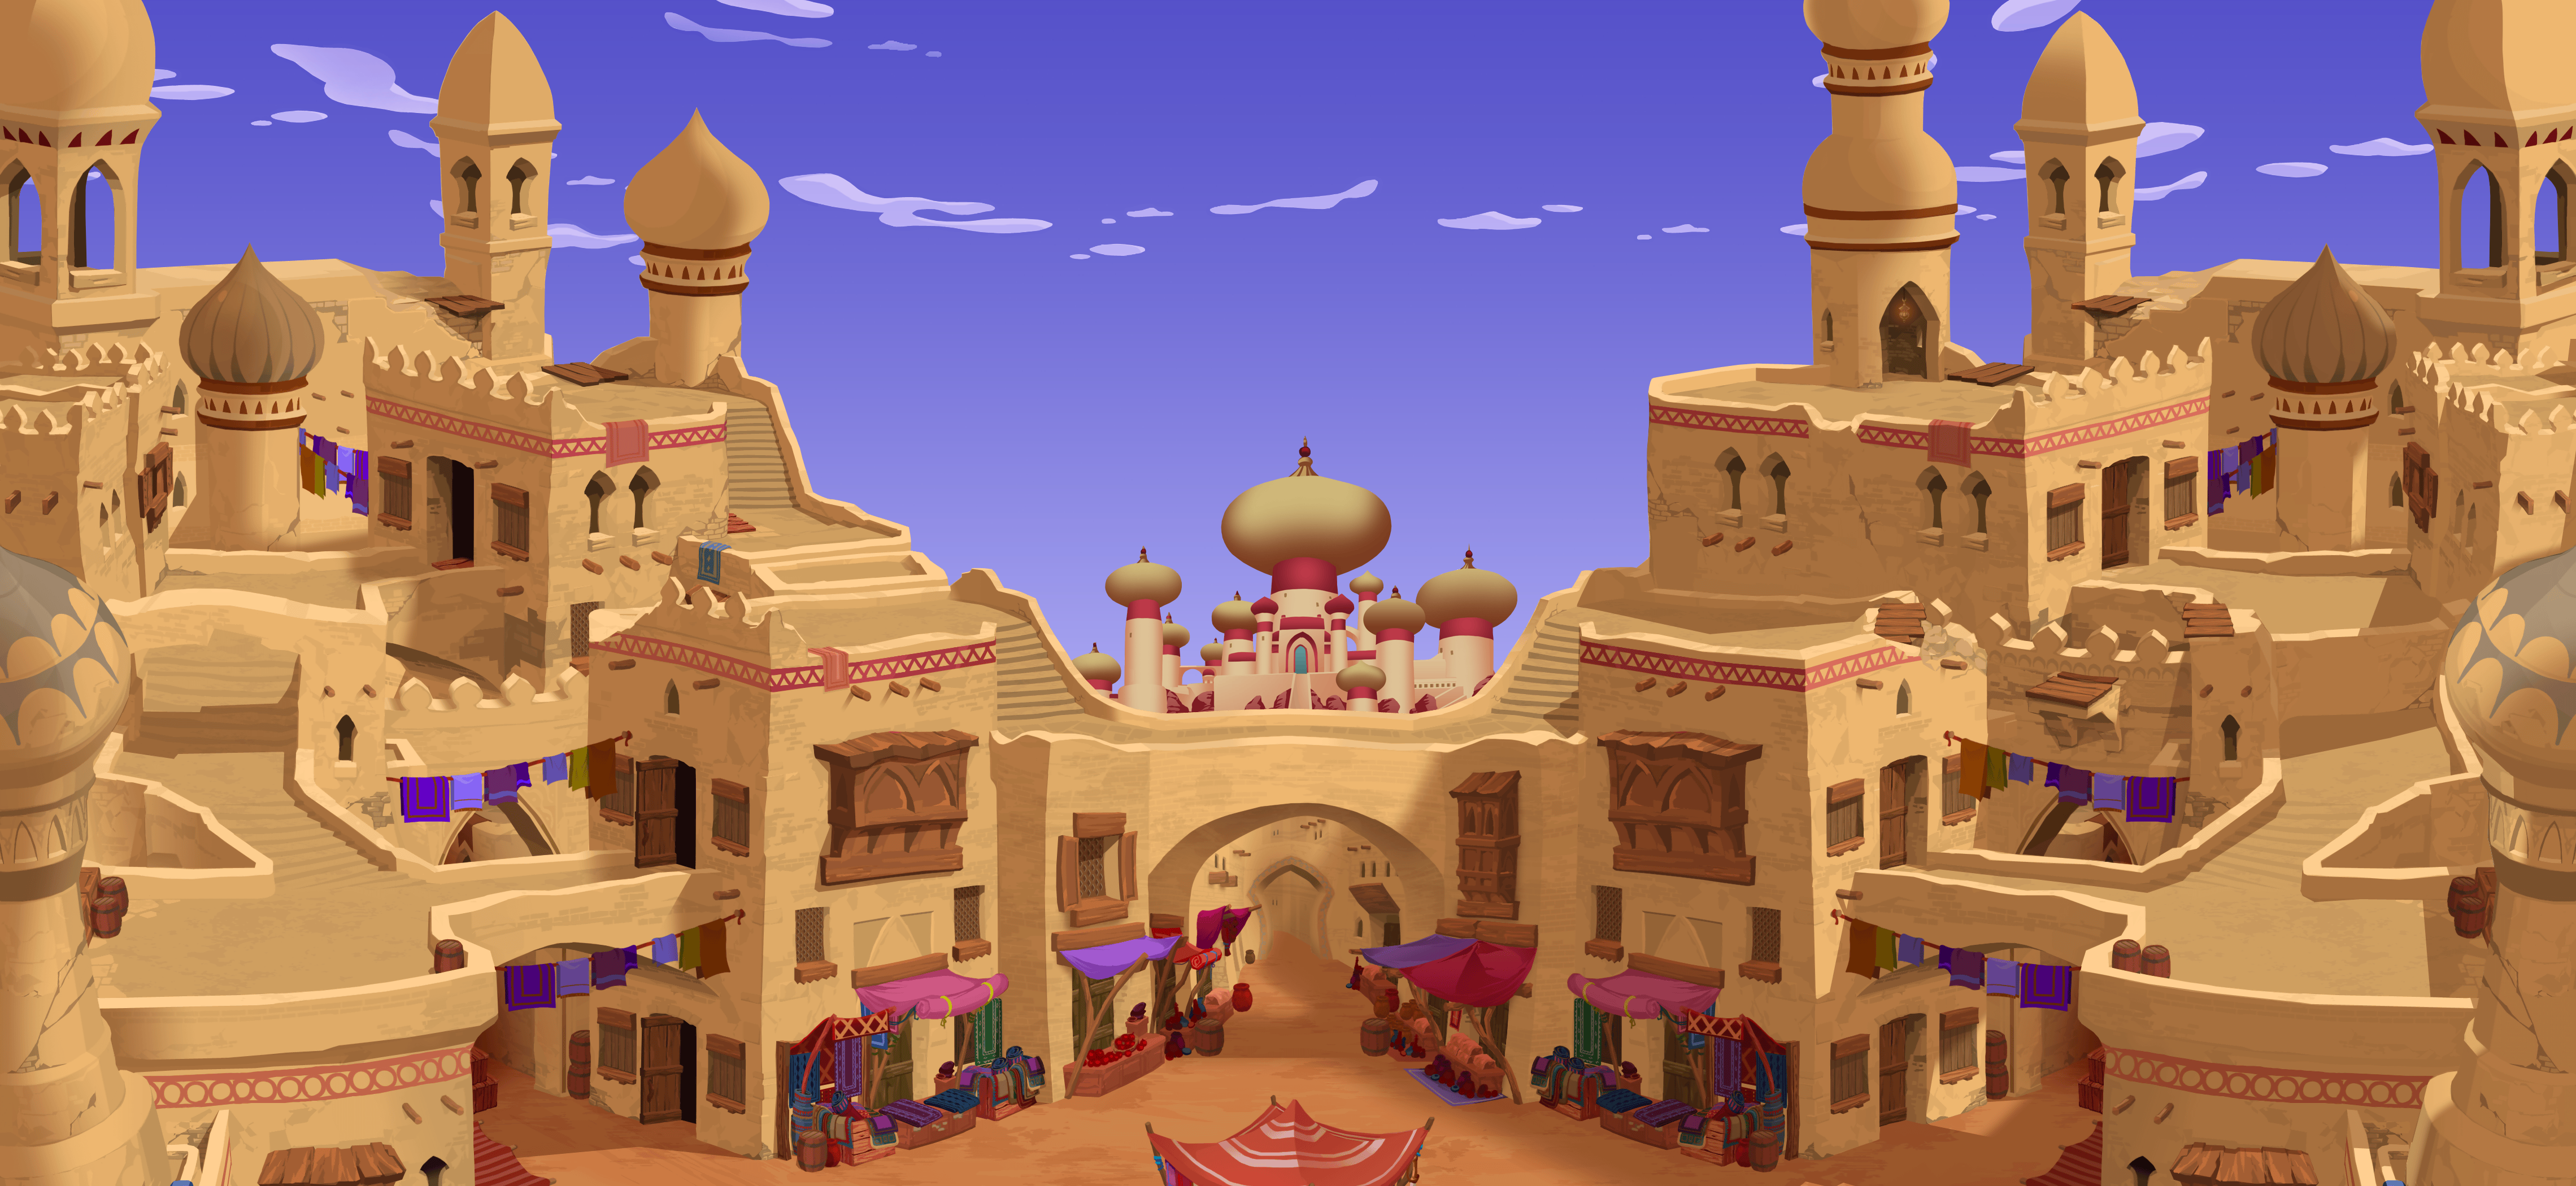 Palace clipart agrabah #14